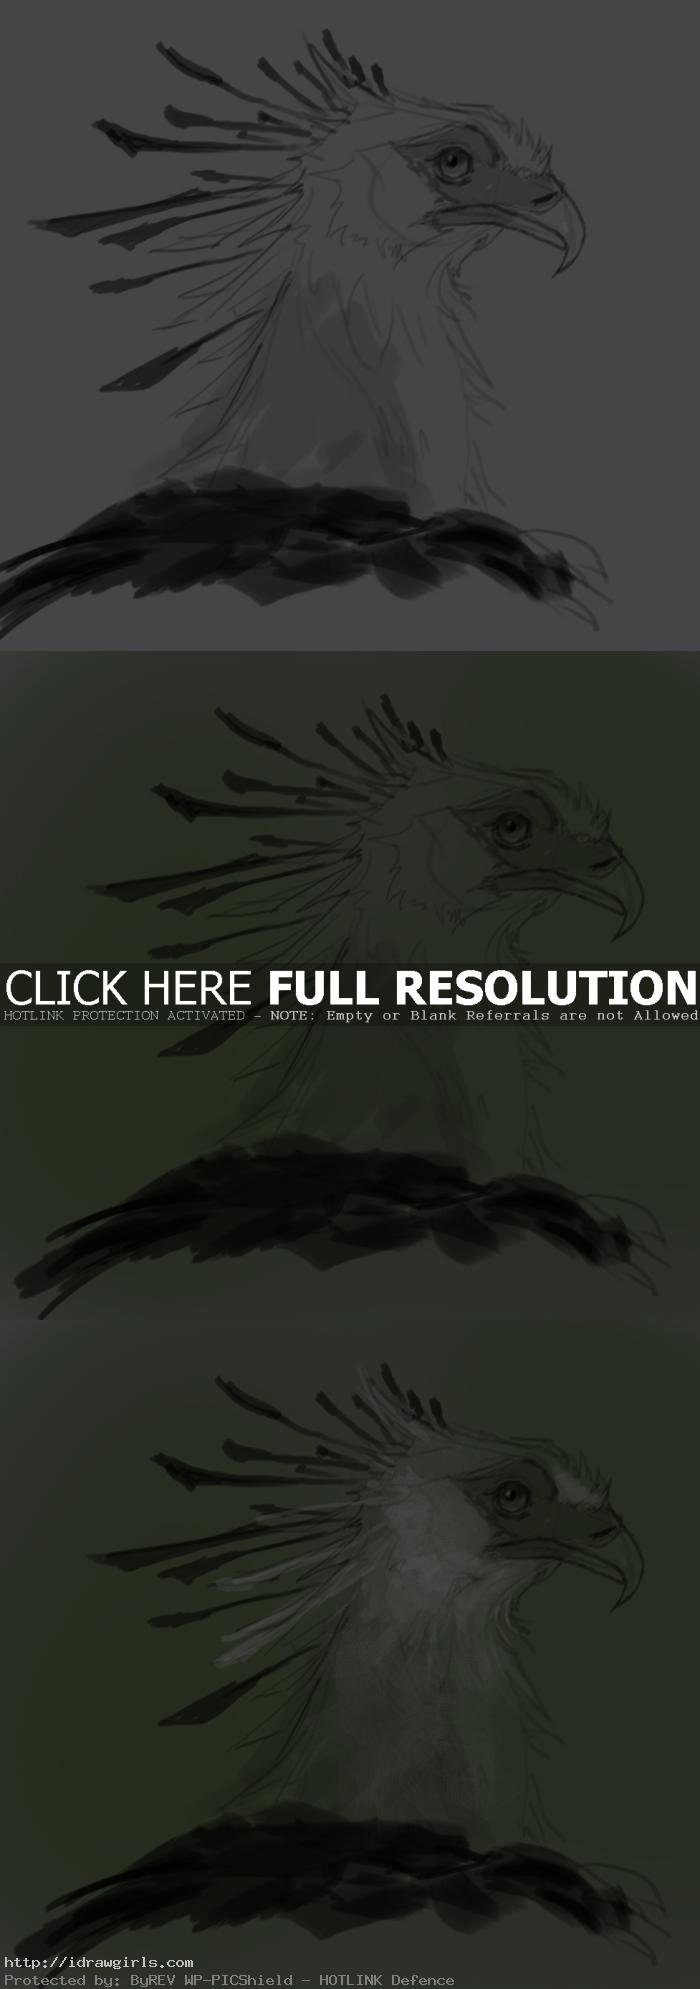 how to paint secretary bird